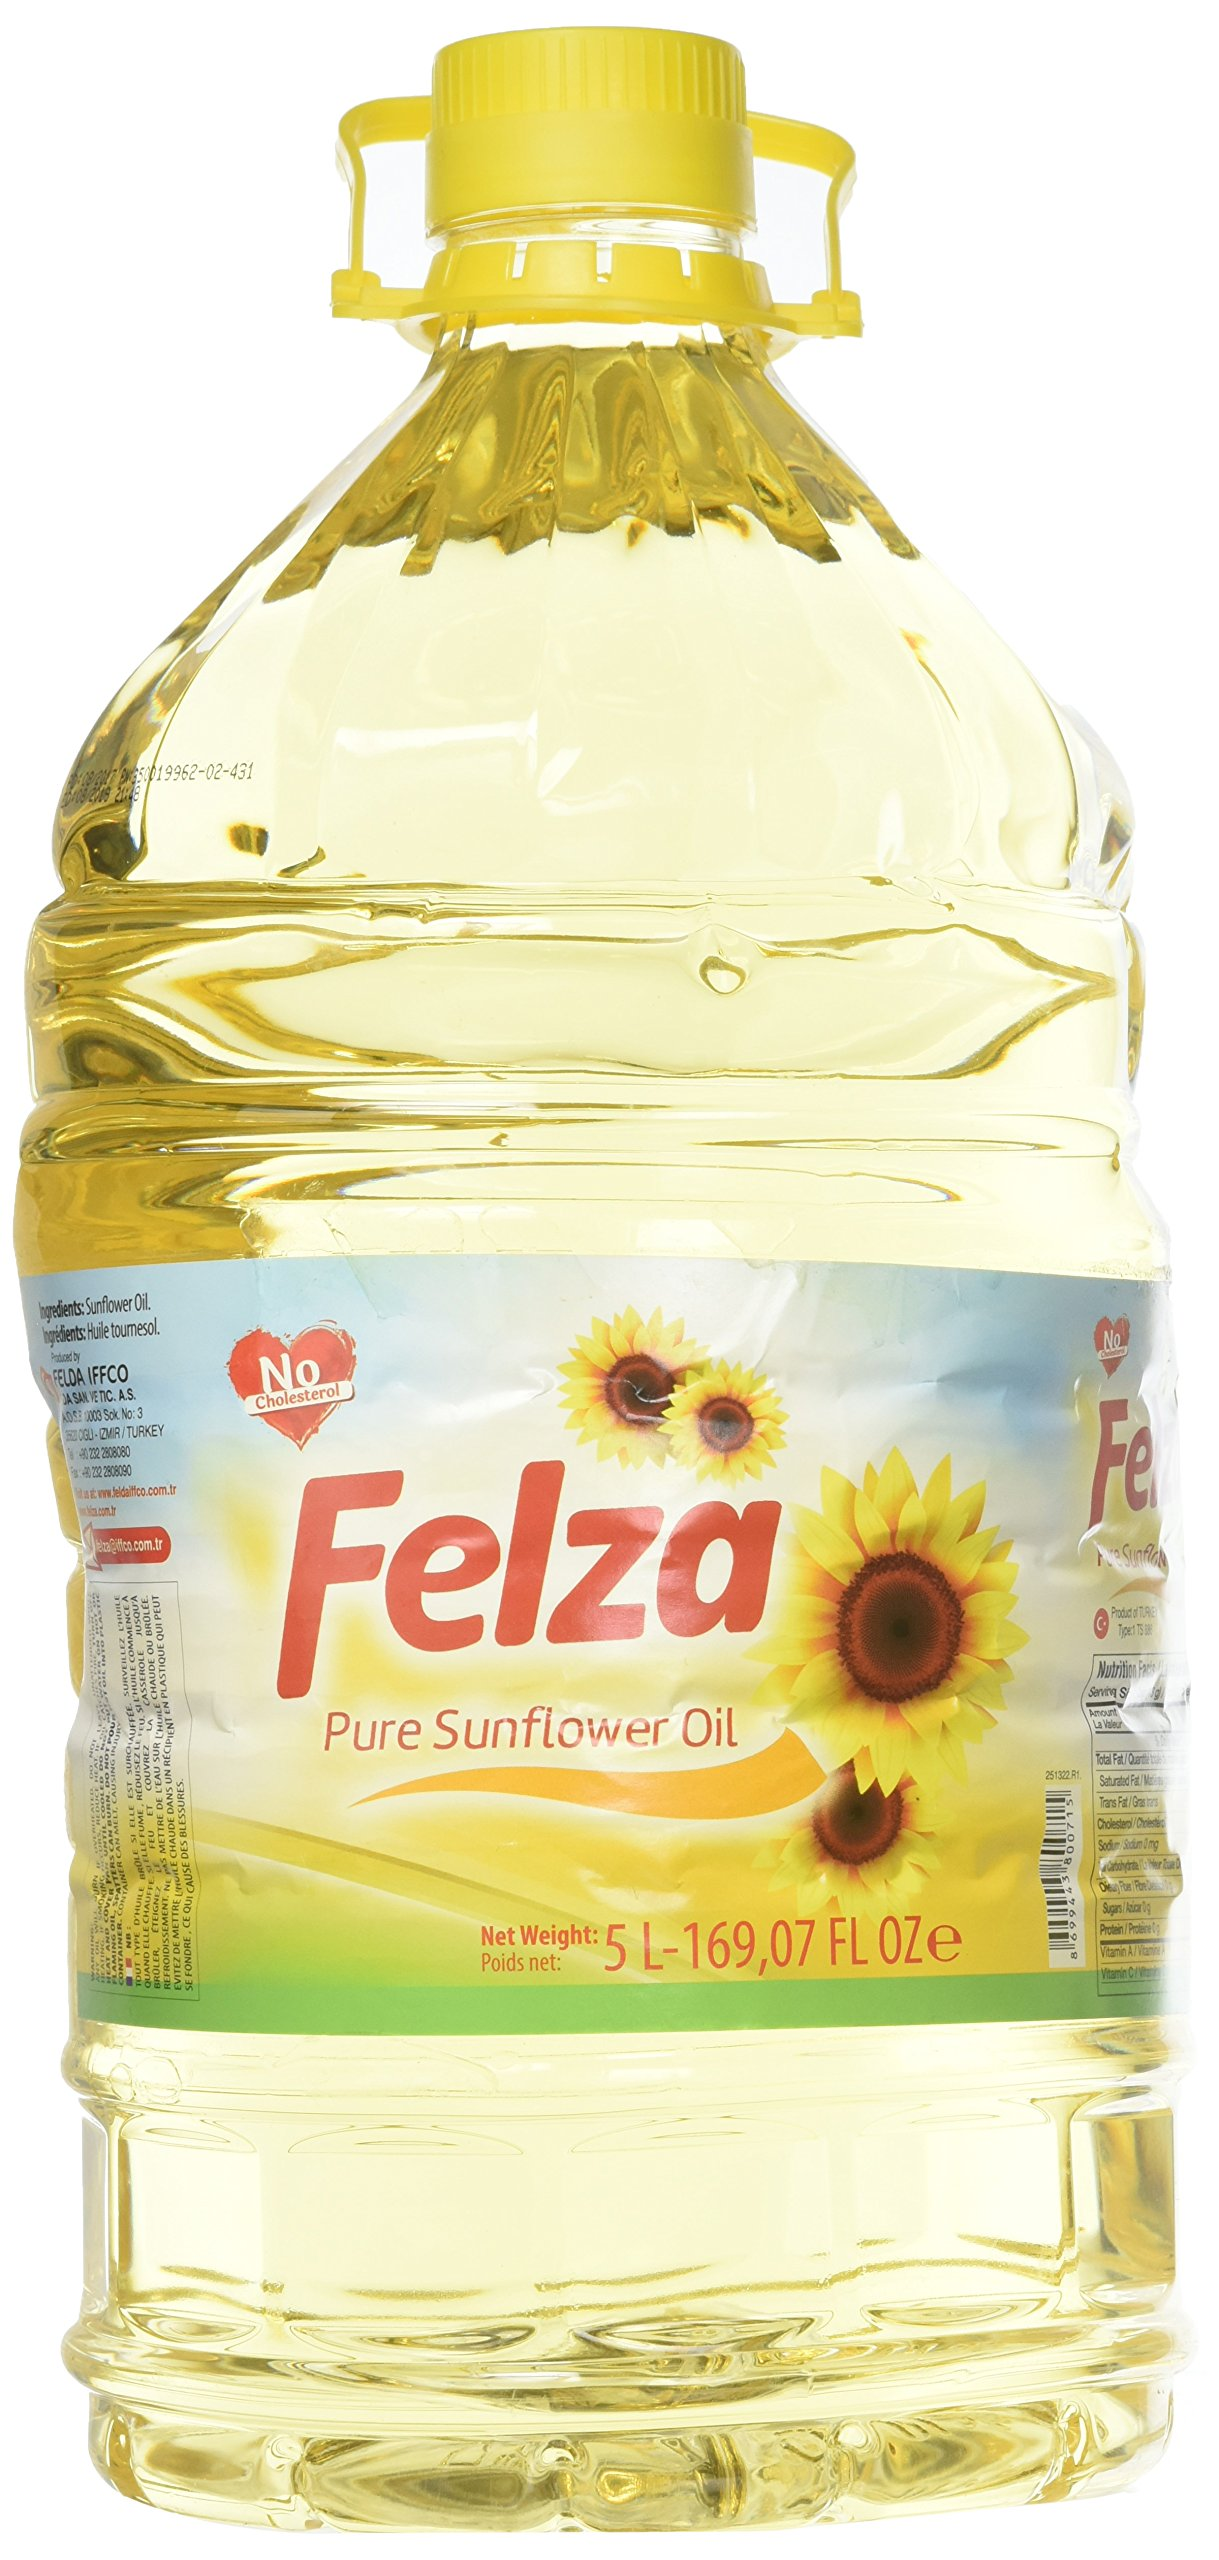 Felza, Pure Sunflower Oil, 5 Liter(ltr)